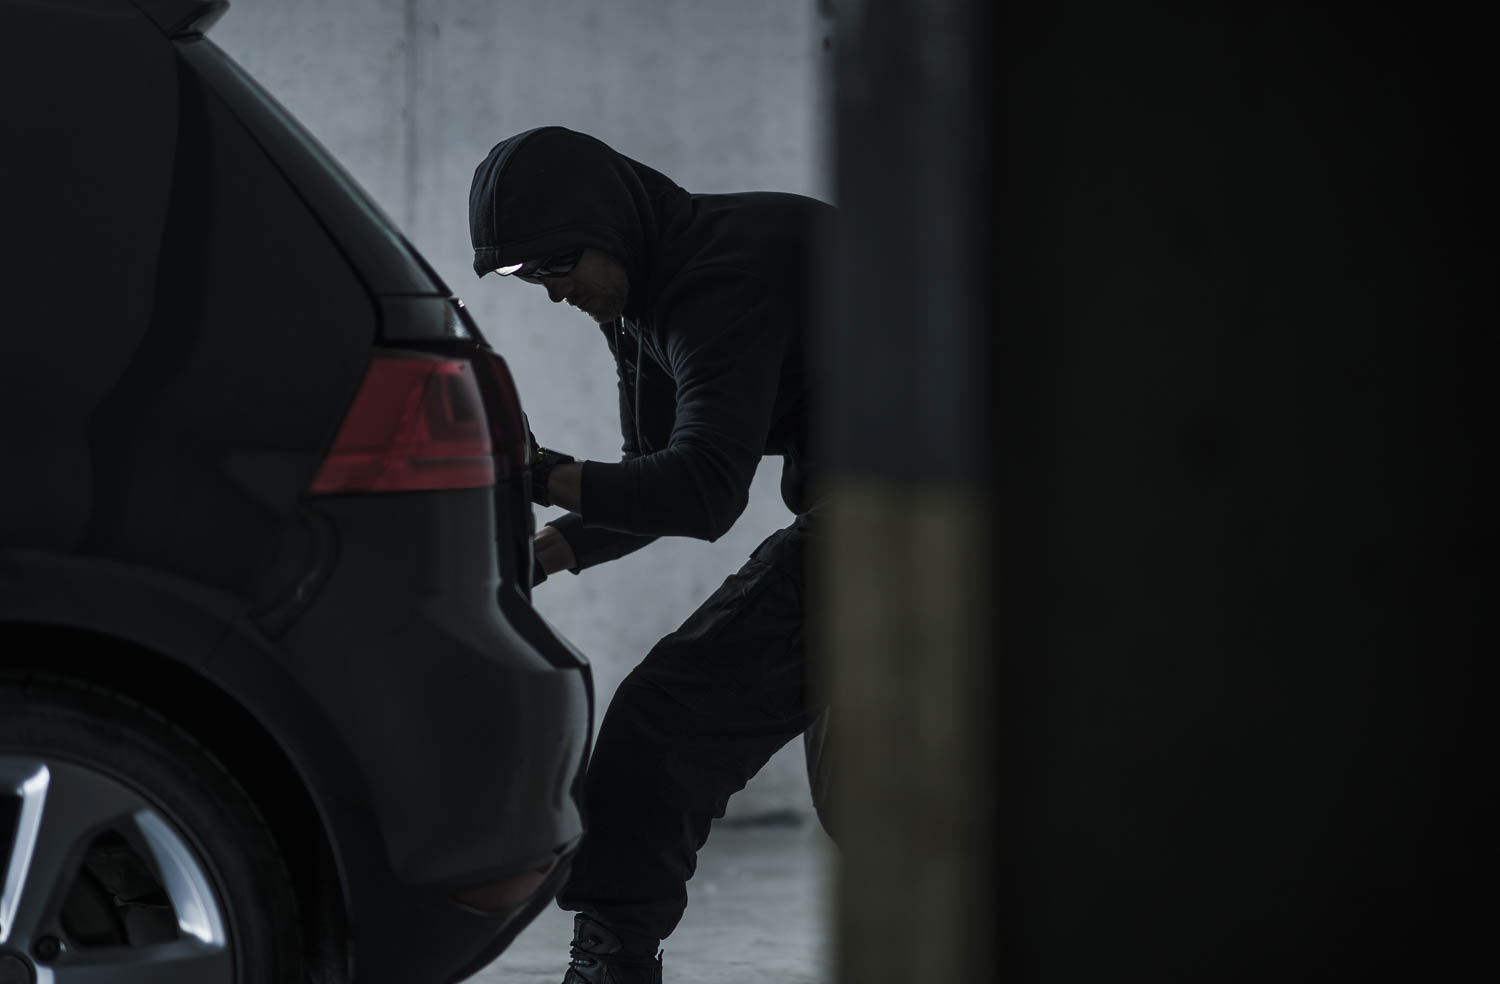 Robbery crimes in Fort Lauderdale include robbery charges for stealing cars and need criminal defense attorneys in South Florida